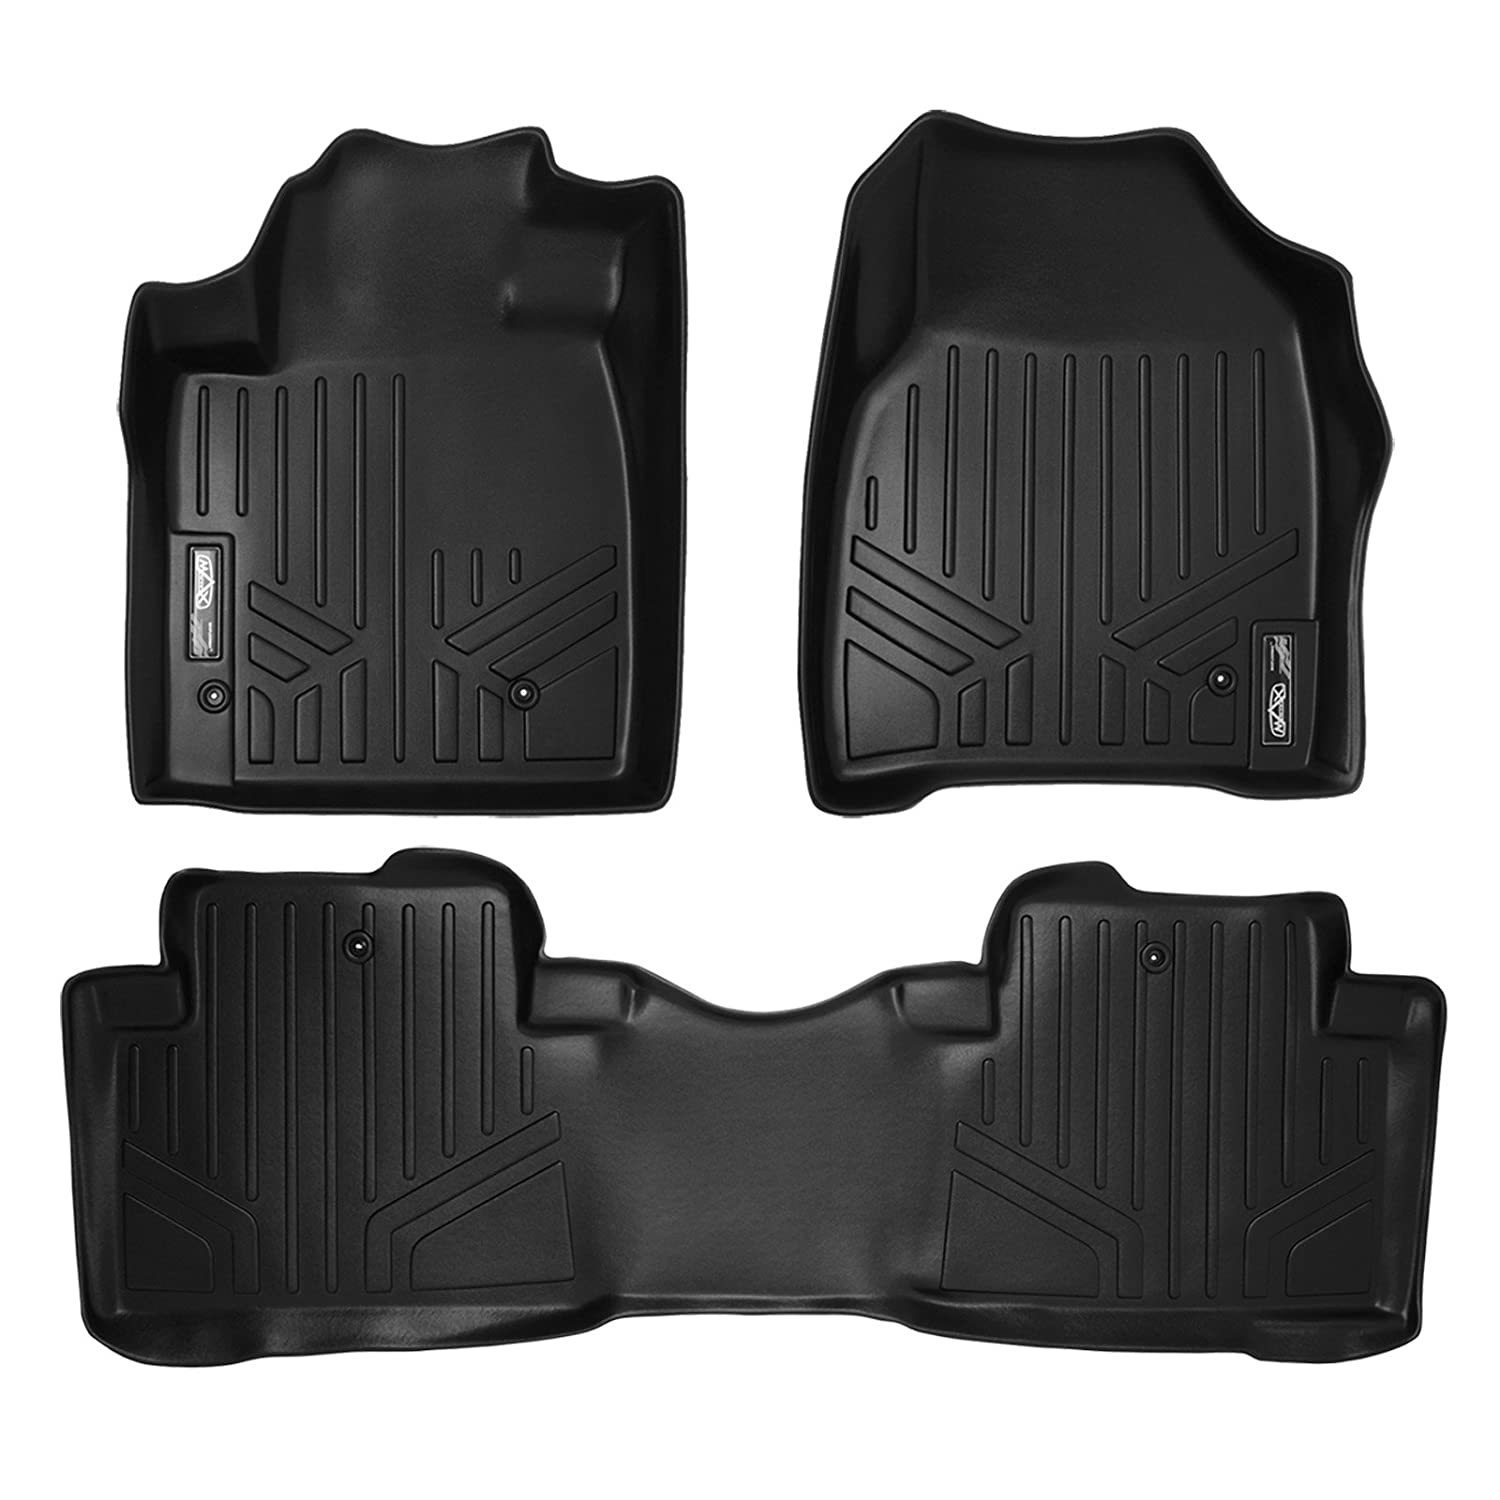 SMARTLINER Floor Mats 2 Row Liner Set Black for 2009-2015 Honda Pilot Maxliner USA A0036/B0036